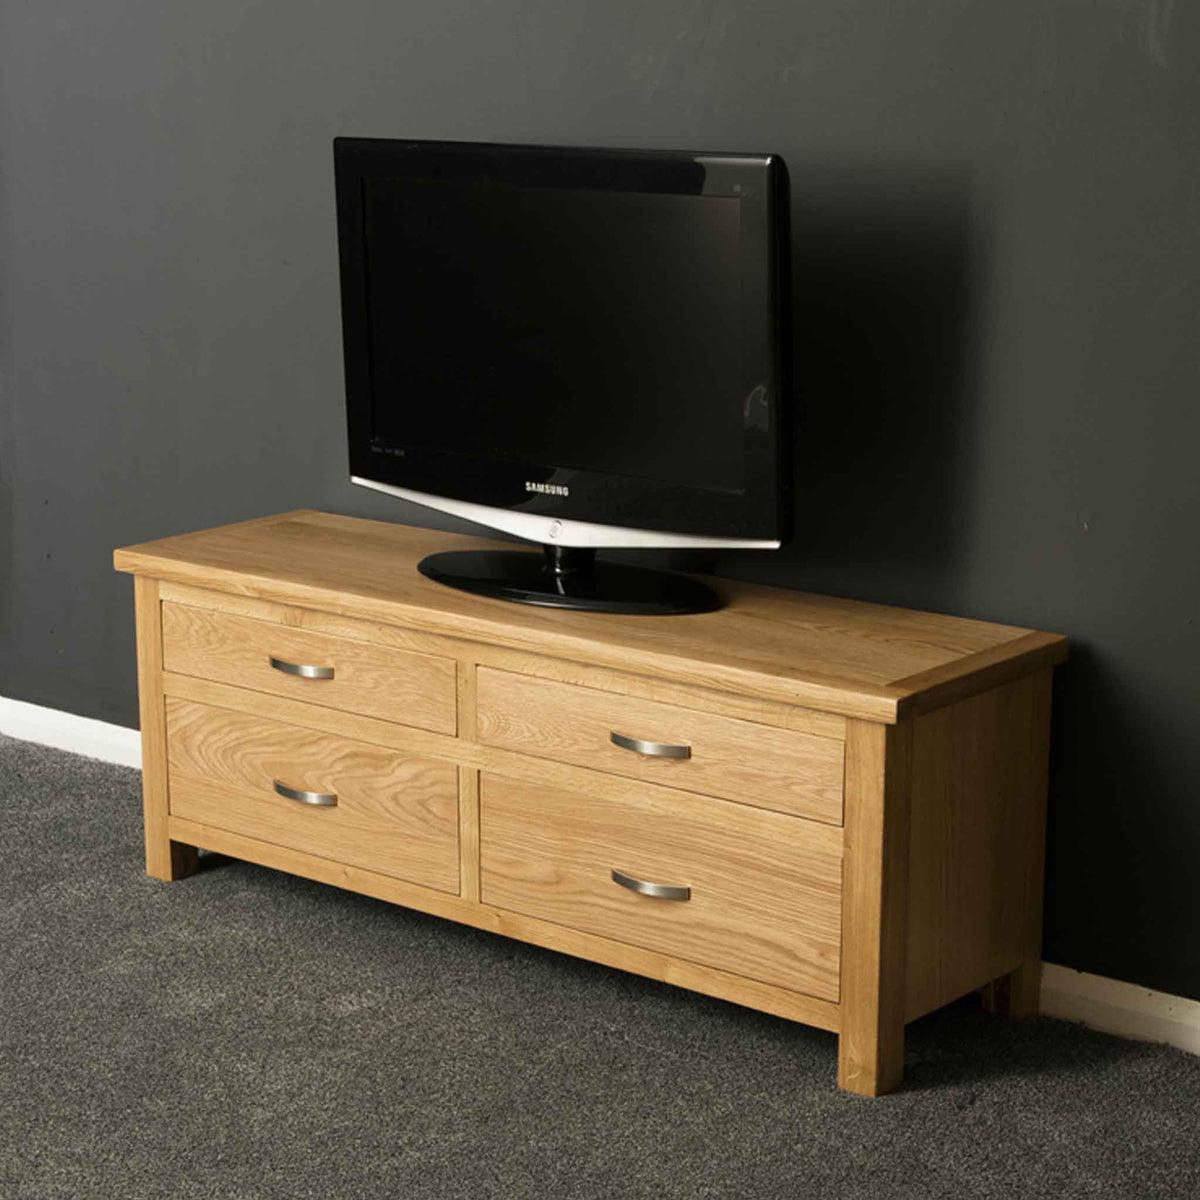 London Oak Large Smart TV Stand side view.